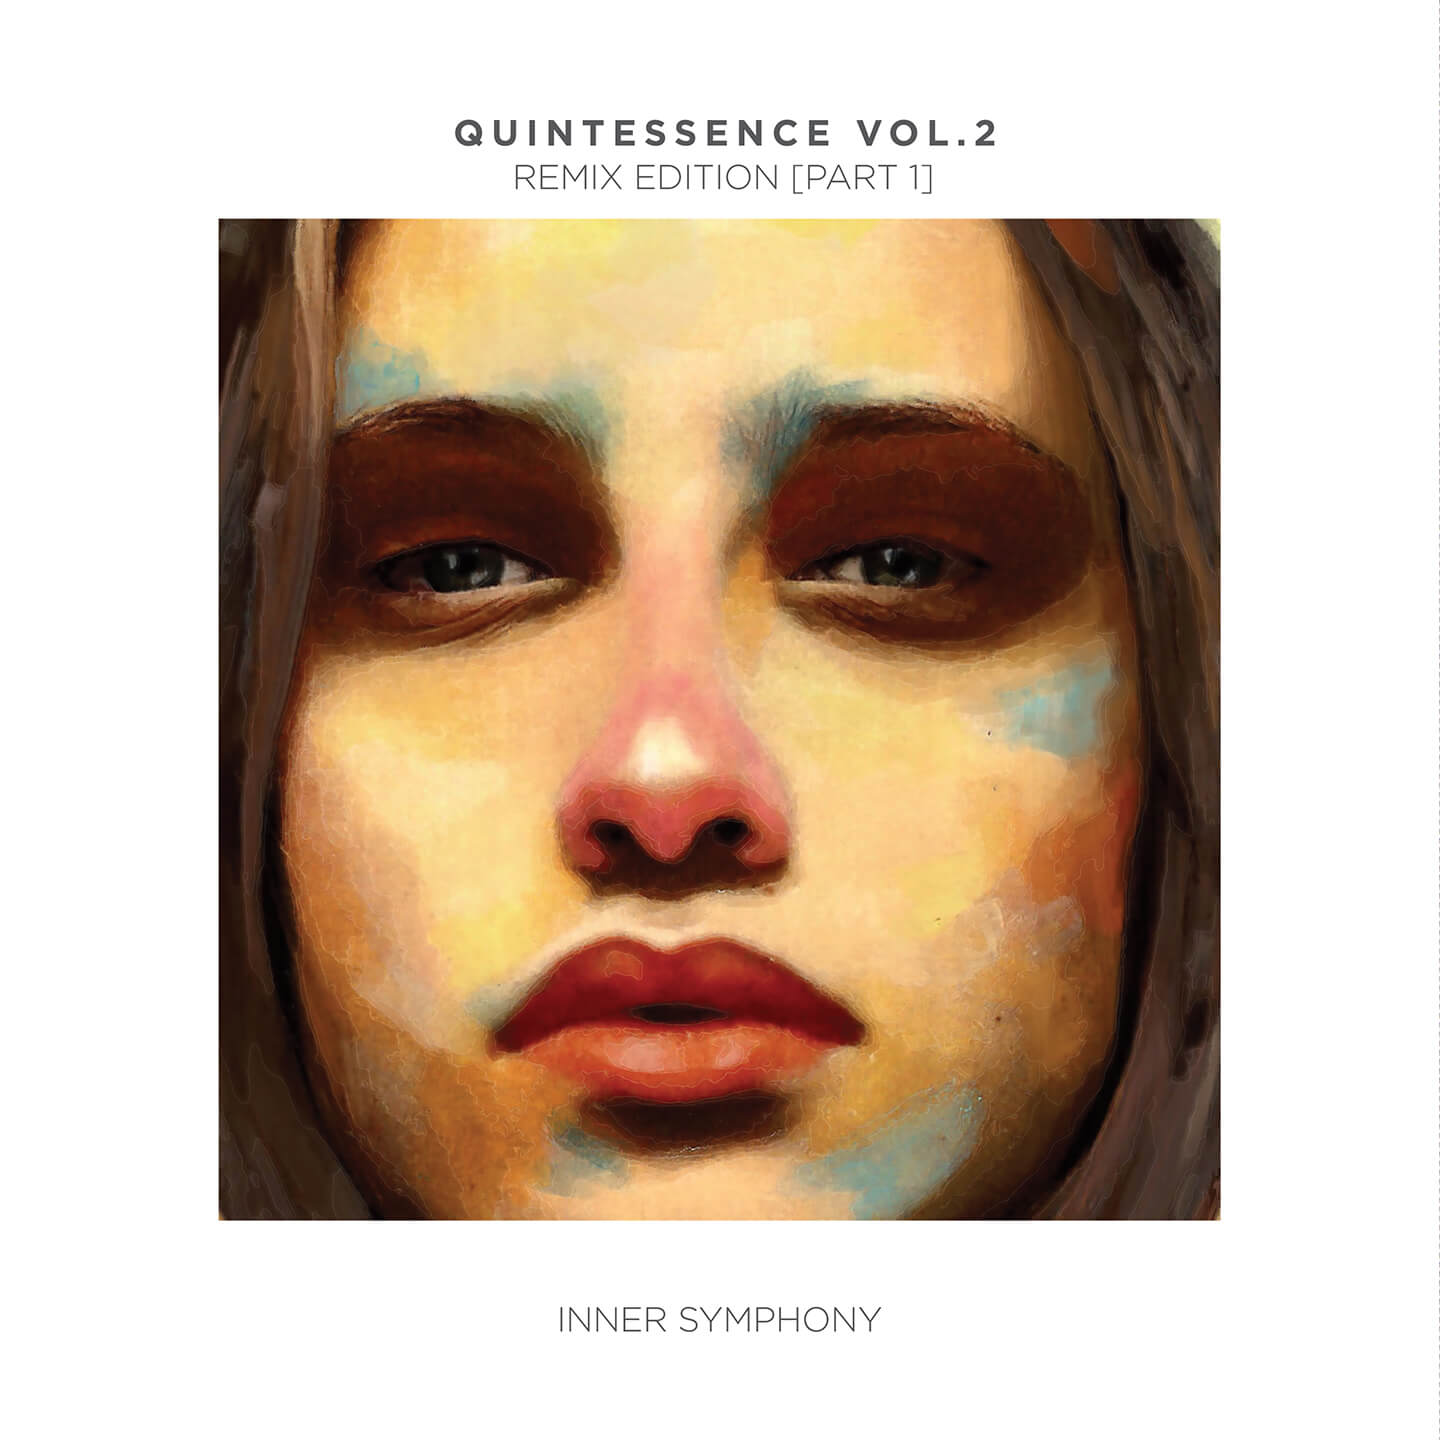 IS022 Quintessence Vol 02 Remix Edition Part 1 - Inner Symphony